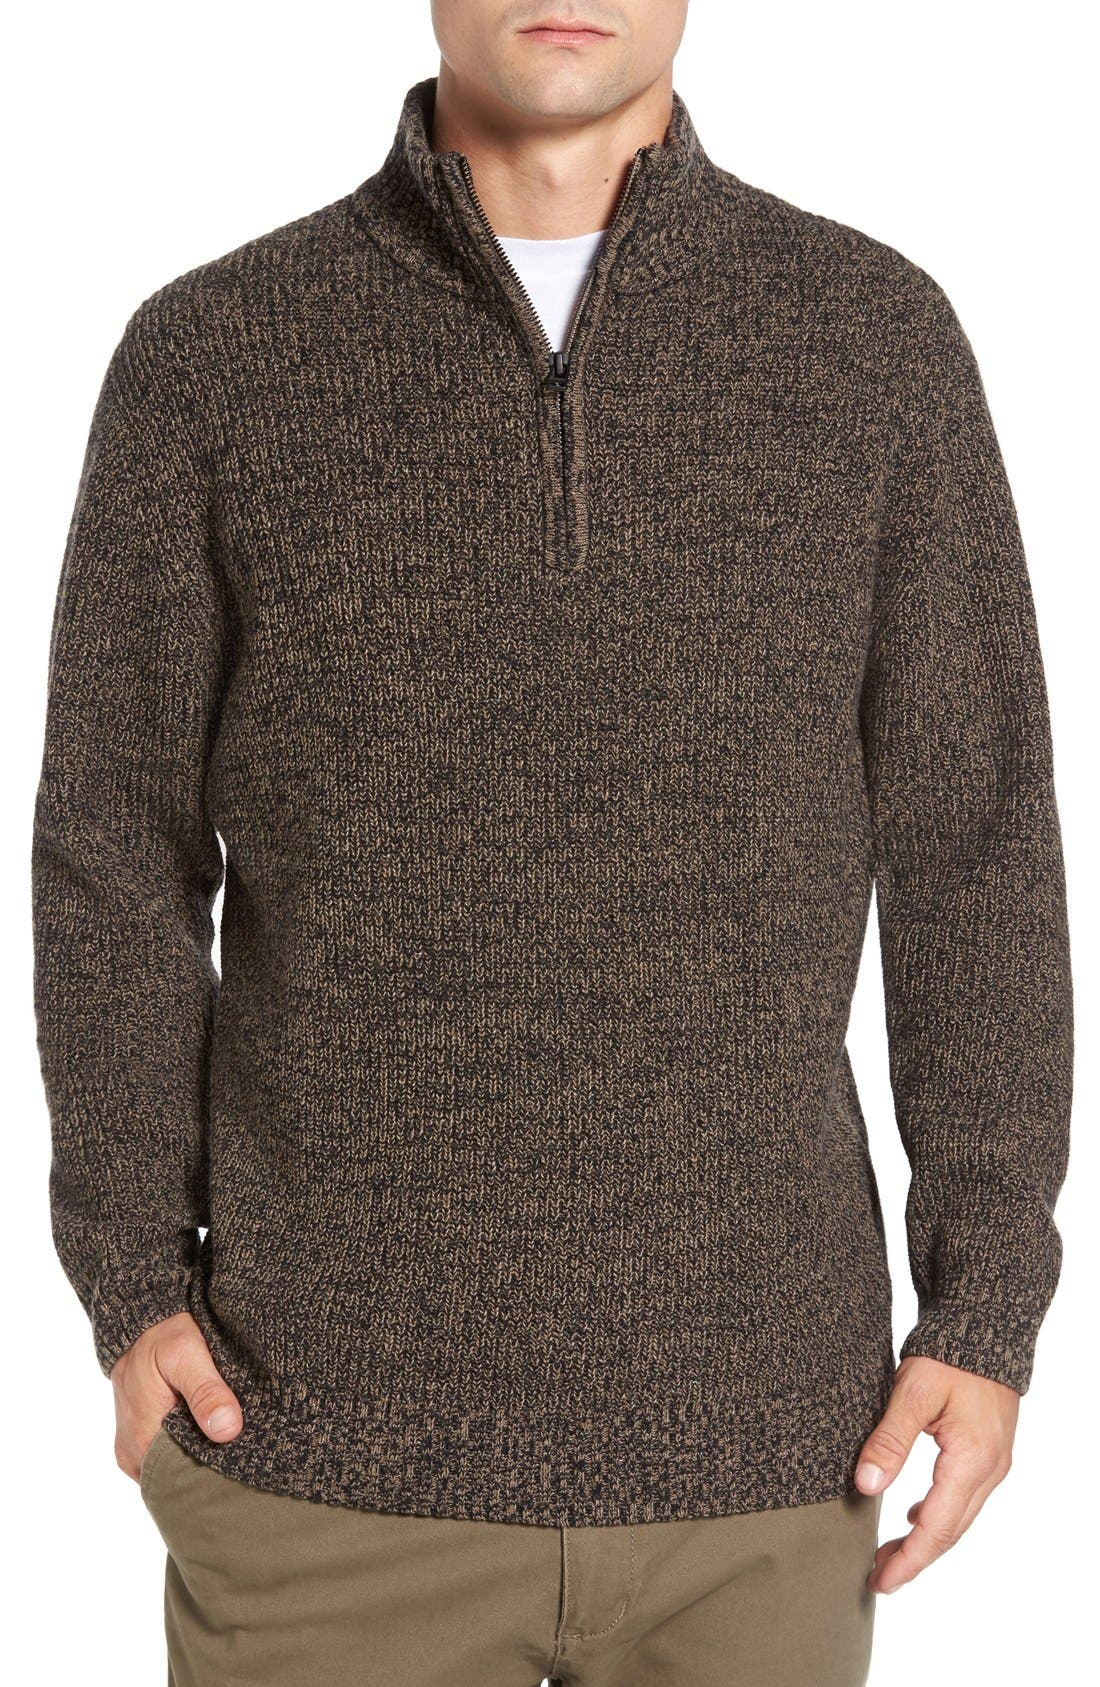 'Woodglen' Herringbone Knit Lambswool Quarter Zip Sweater,                             Main thumbnail 1, color,                             200